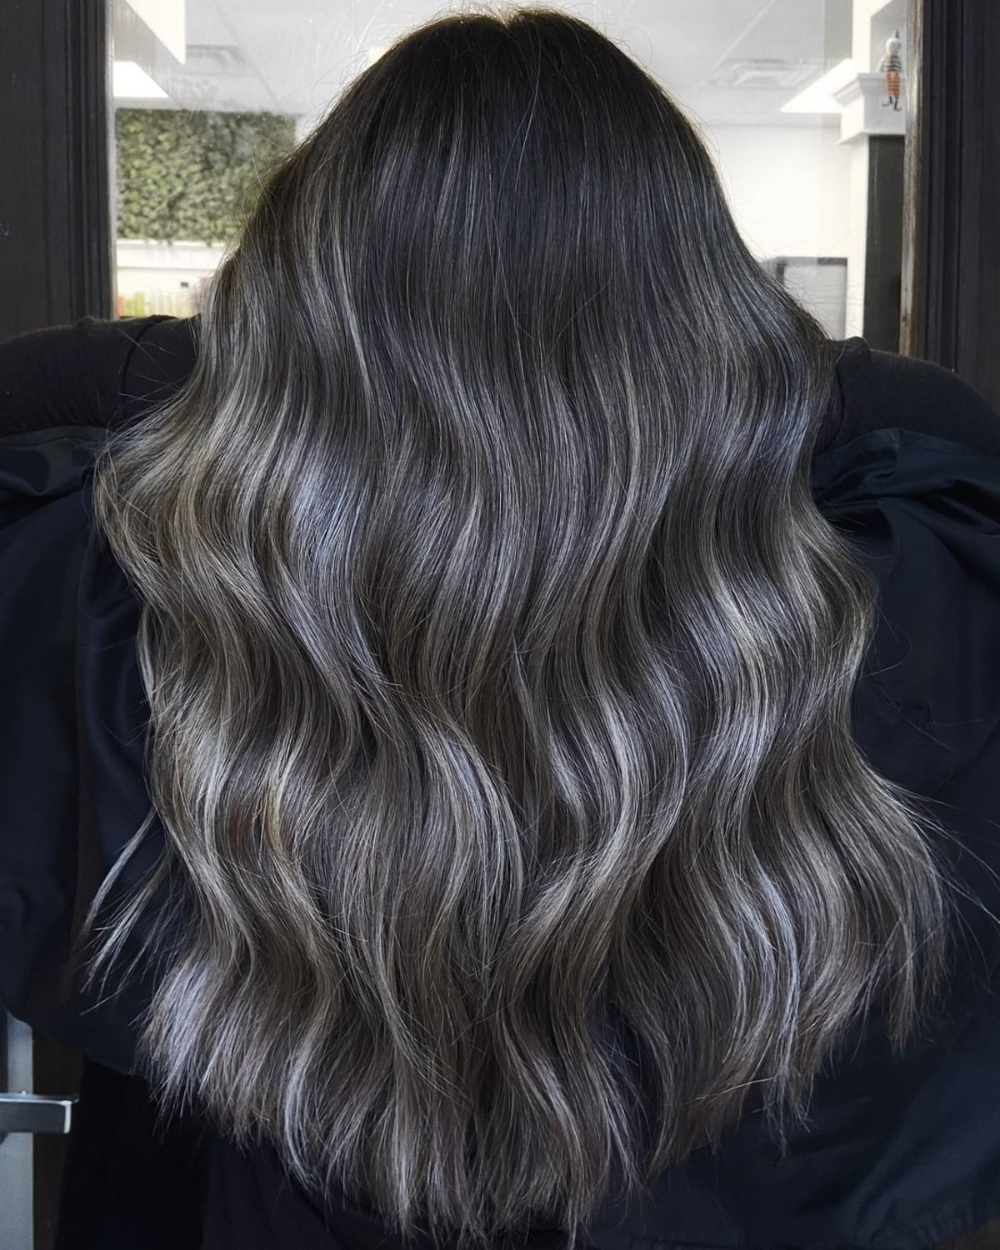 21 Stunning Examples of Balayage Dark Hair Color Gallery